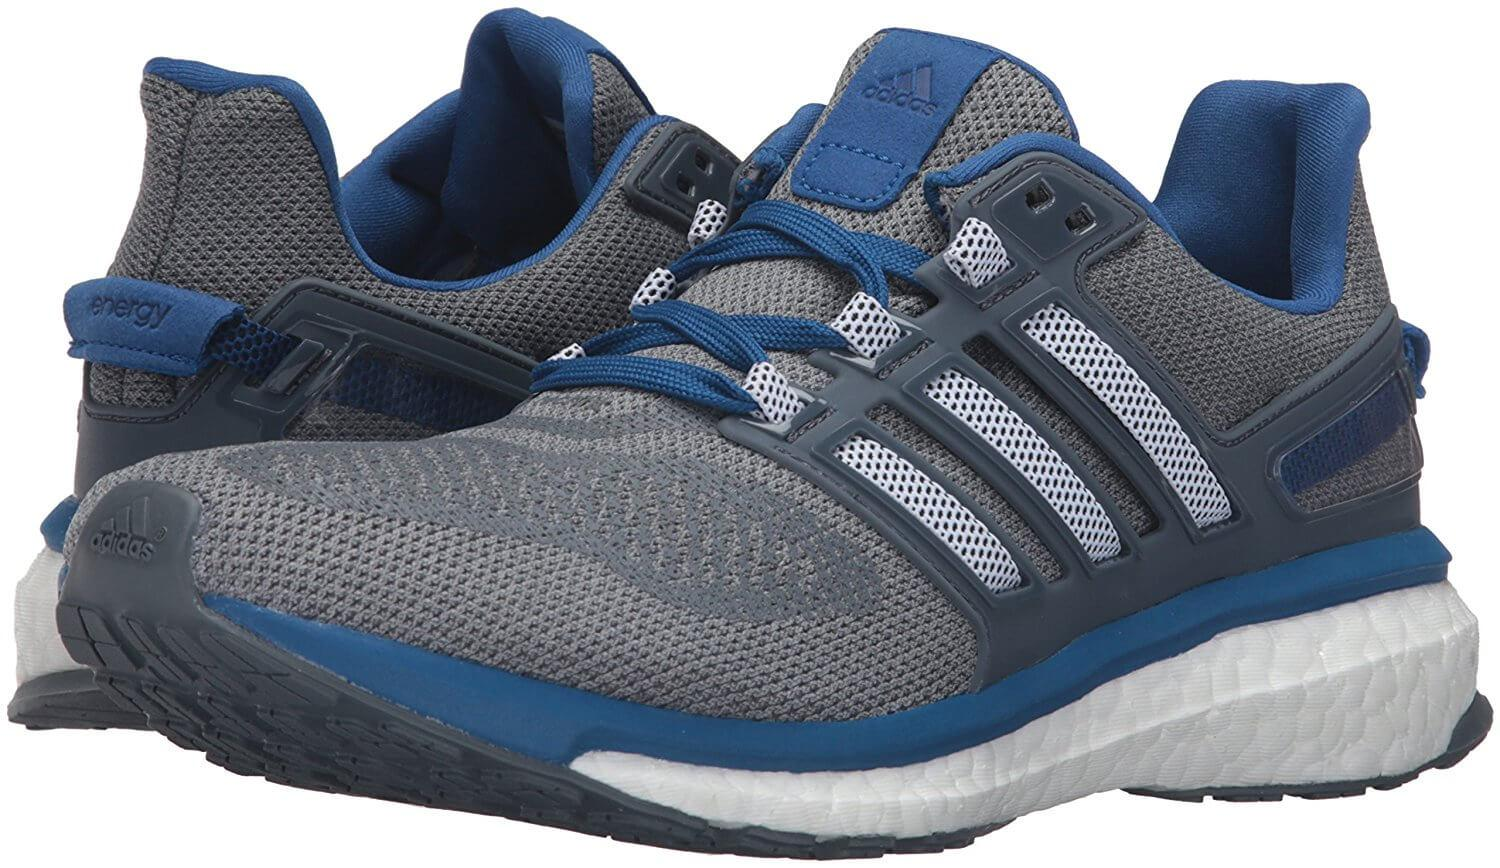 Adidas Energy Boost 3 Review - Buy or Not in Mar 2019  d259202e0